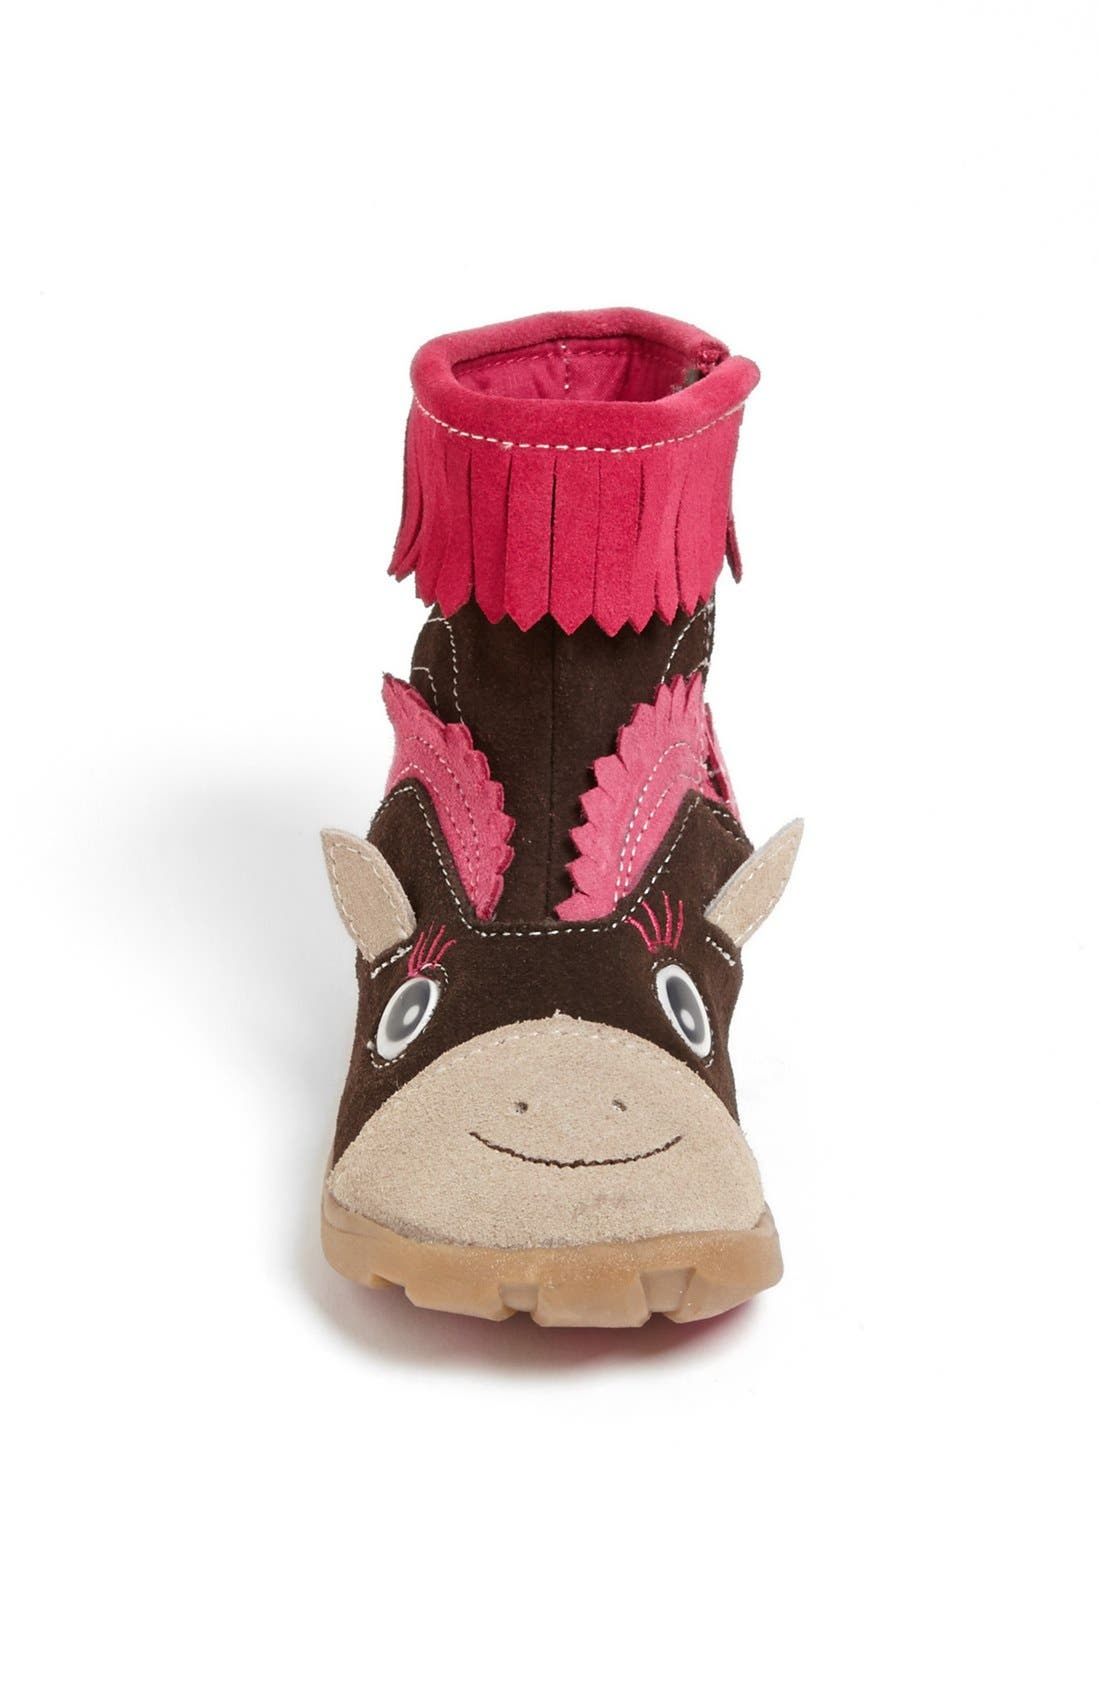 Alternate Image 3  - Zooligans 'Paloma the Pony' Boot (Baby, Walker, Toddler & Little Kid)